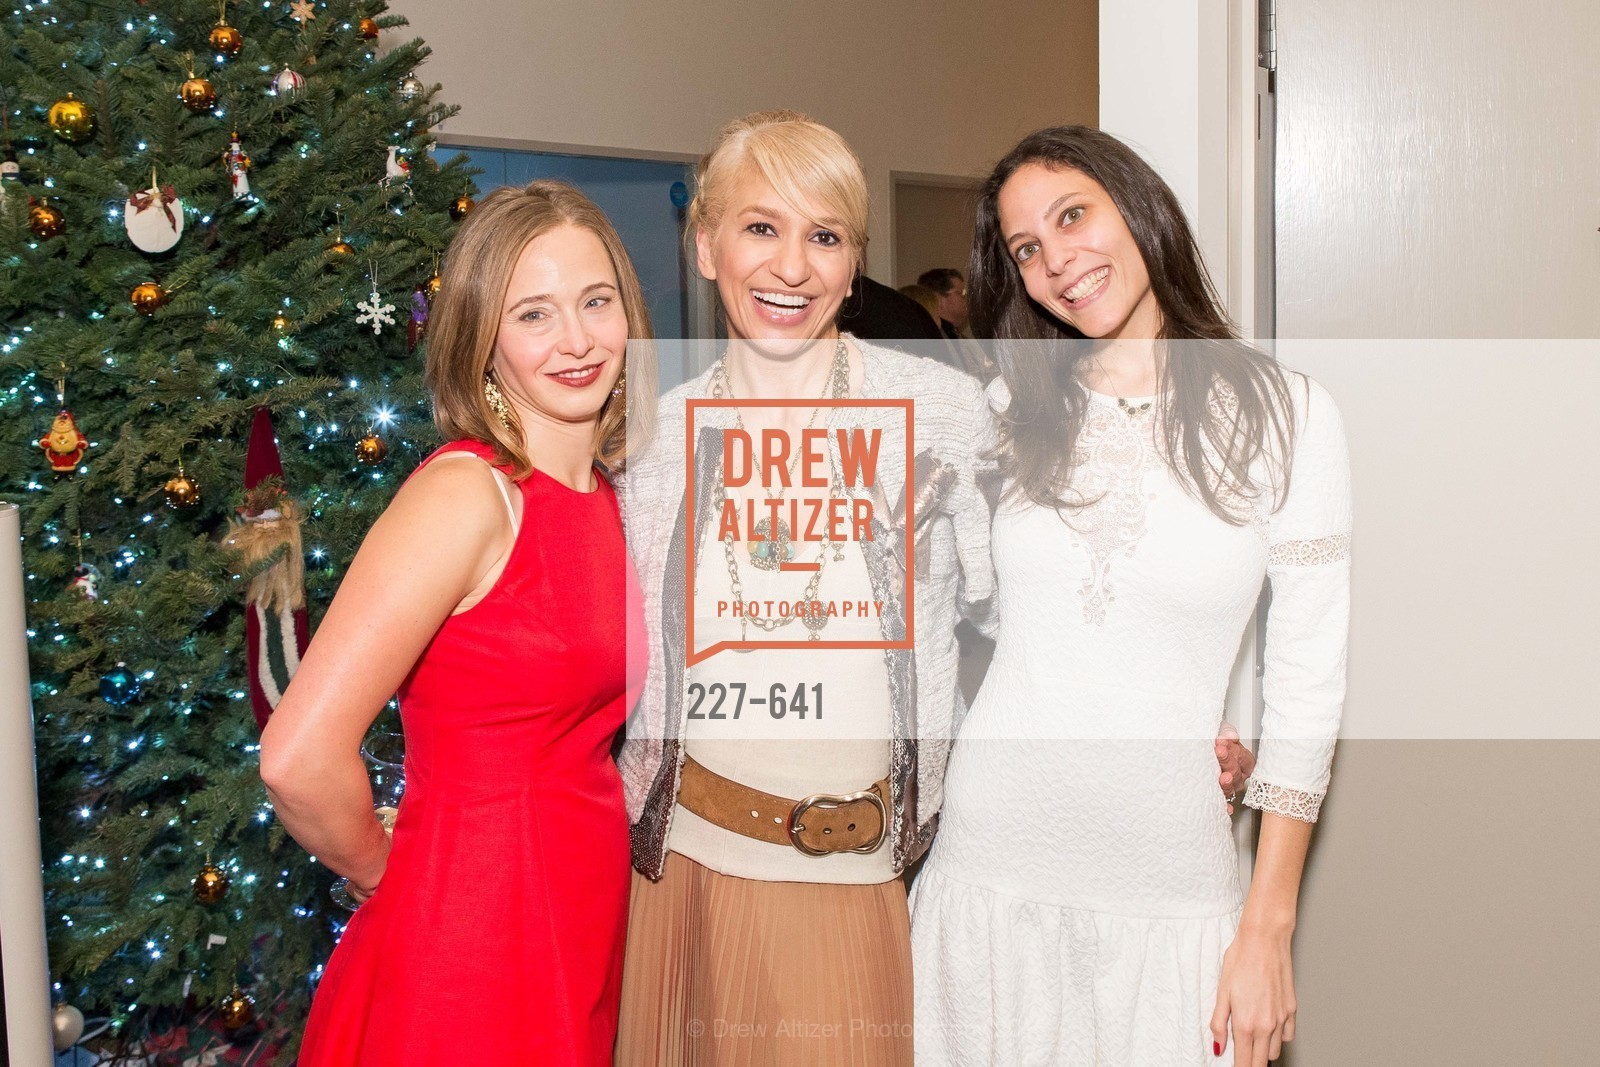 Mylea Charvat, Navid Armtstrong, Rachel Wolfson, Savonix Launch Celebration and Toys for Tots Benefit, Savonix. 300 Broadway, Suite 14, December 10th, 2015,Drew Altizer, Drew Altizer Photography, full-service event agency, private events, San Francisco photographer, photographer California